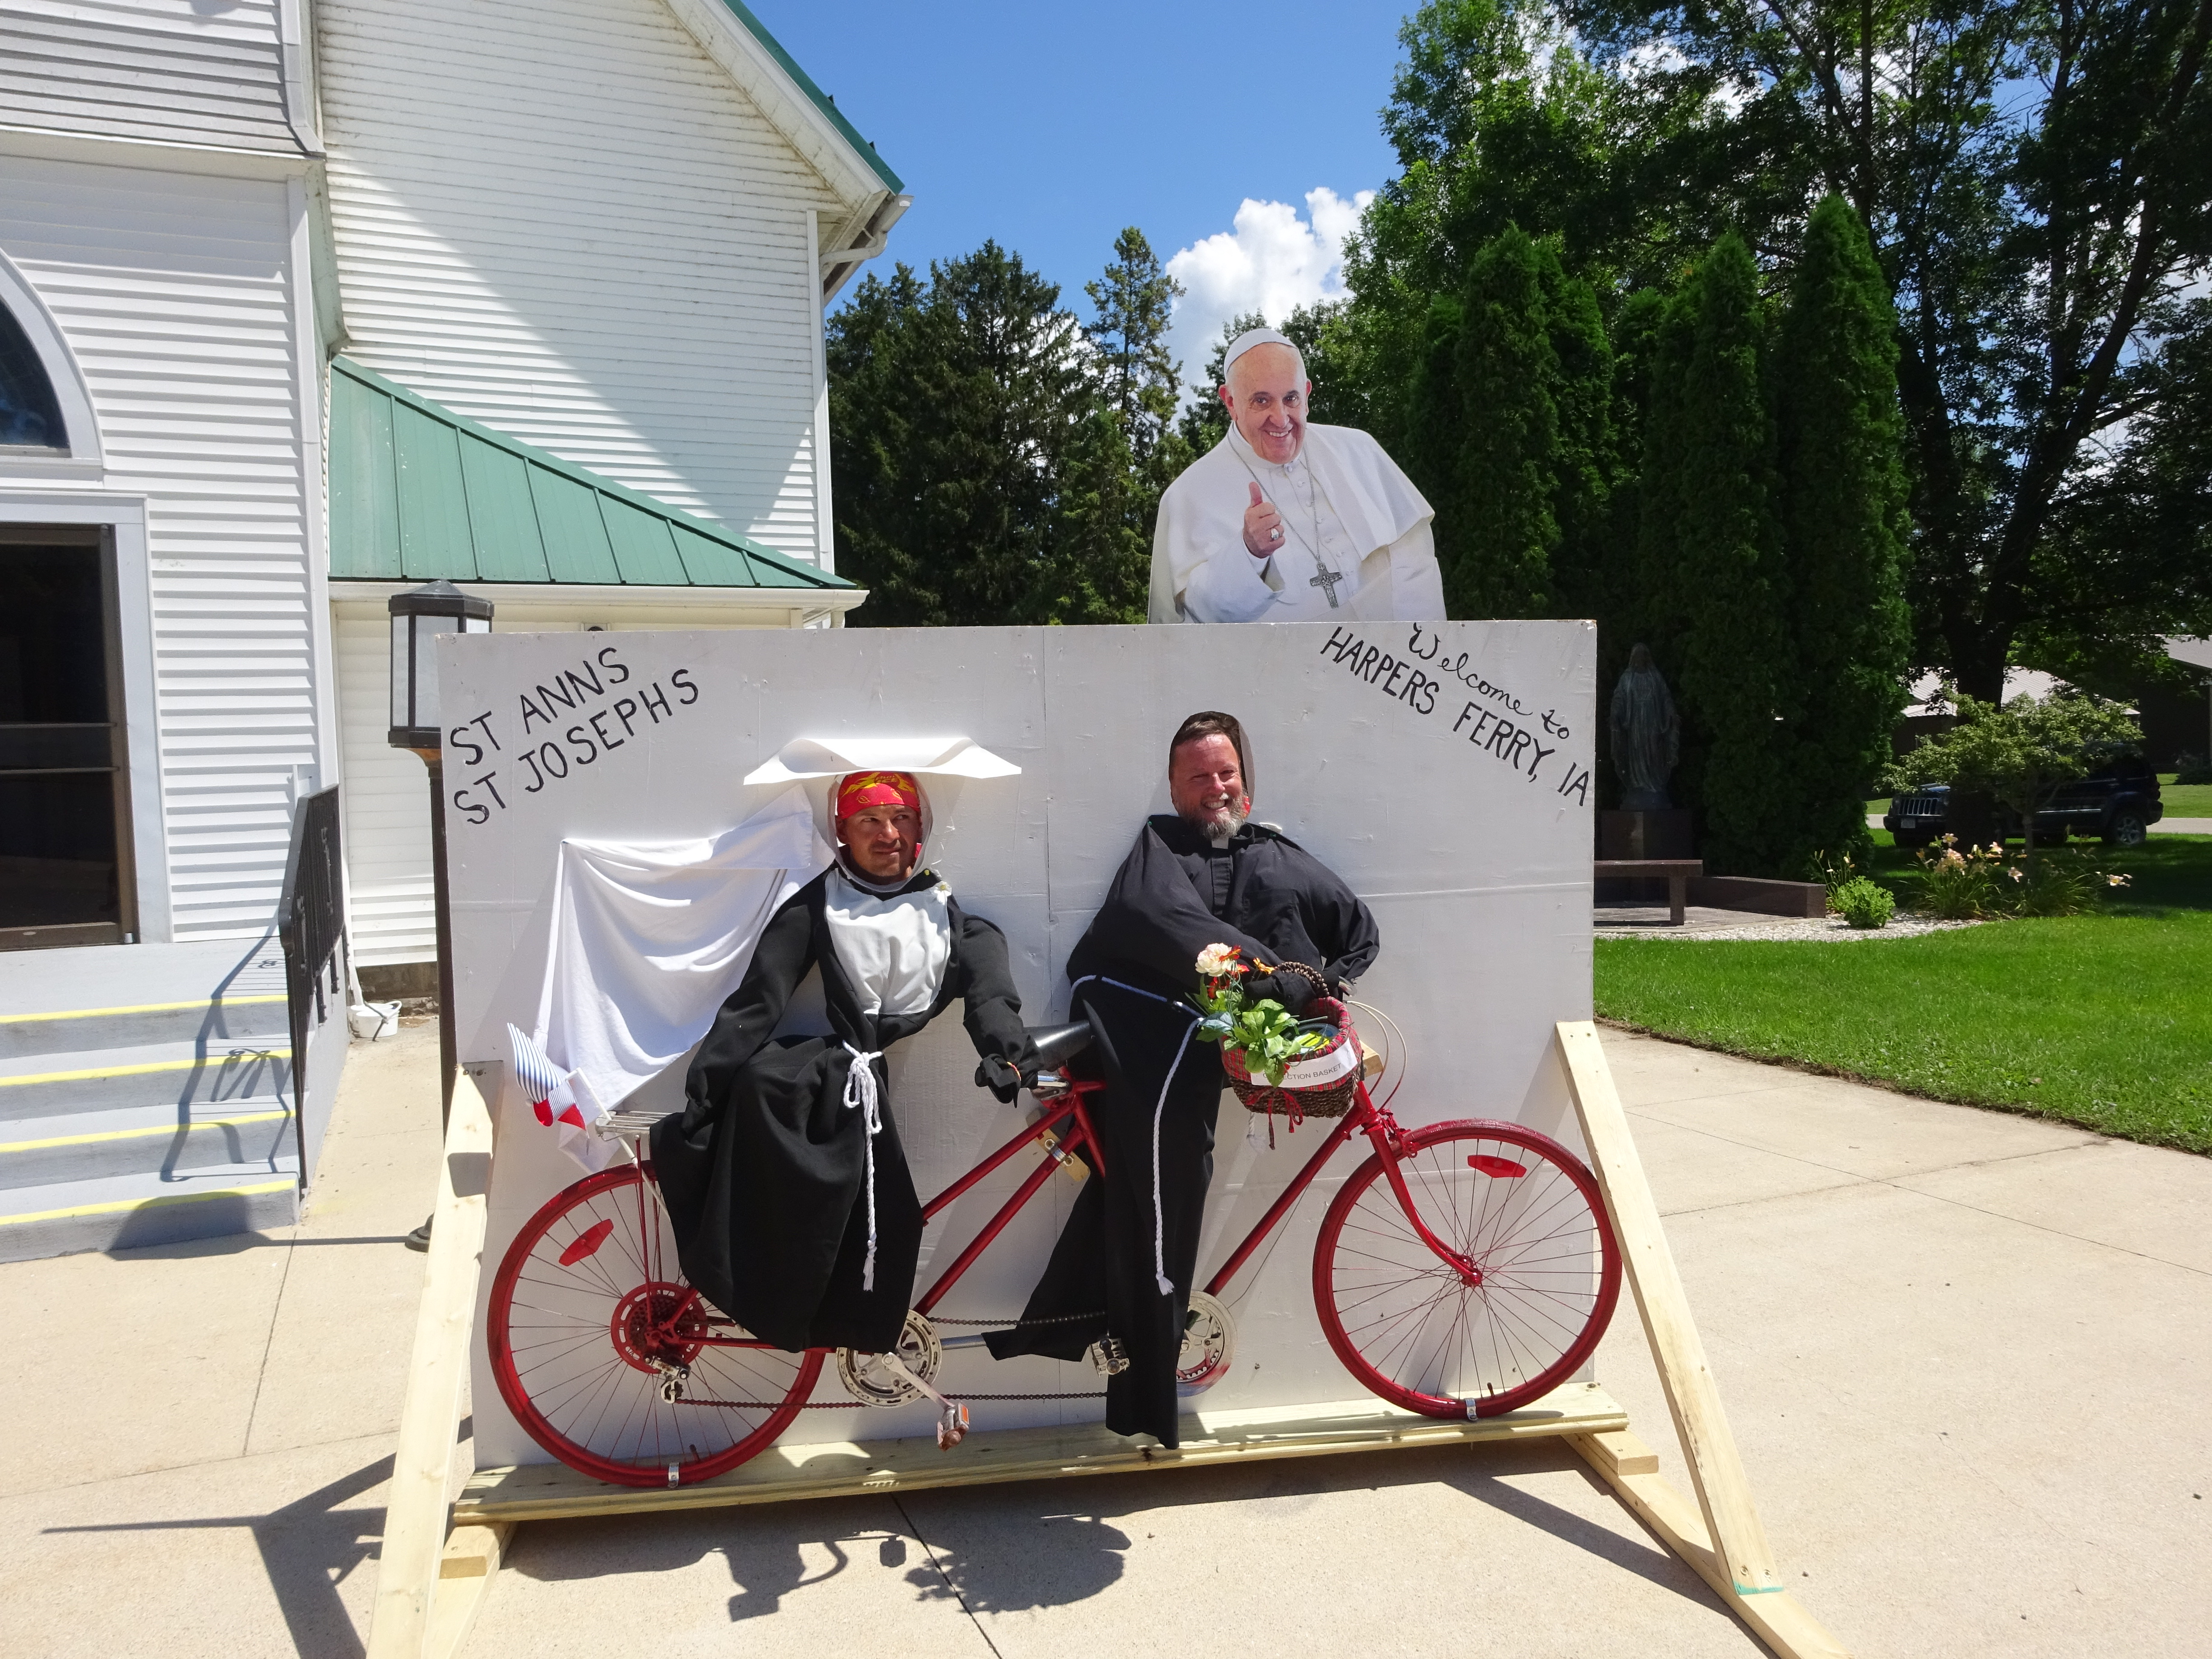 Team Butt Ice and The Pope